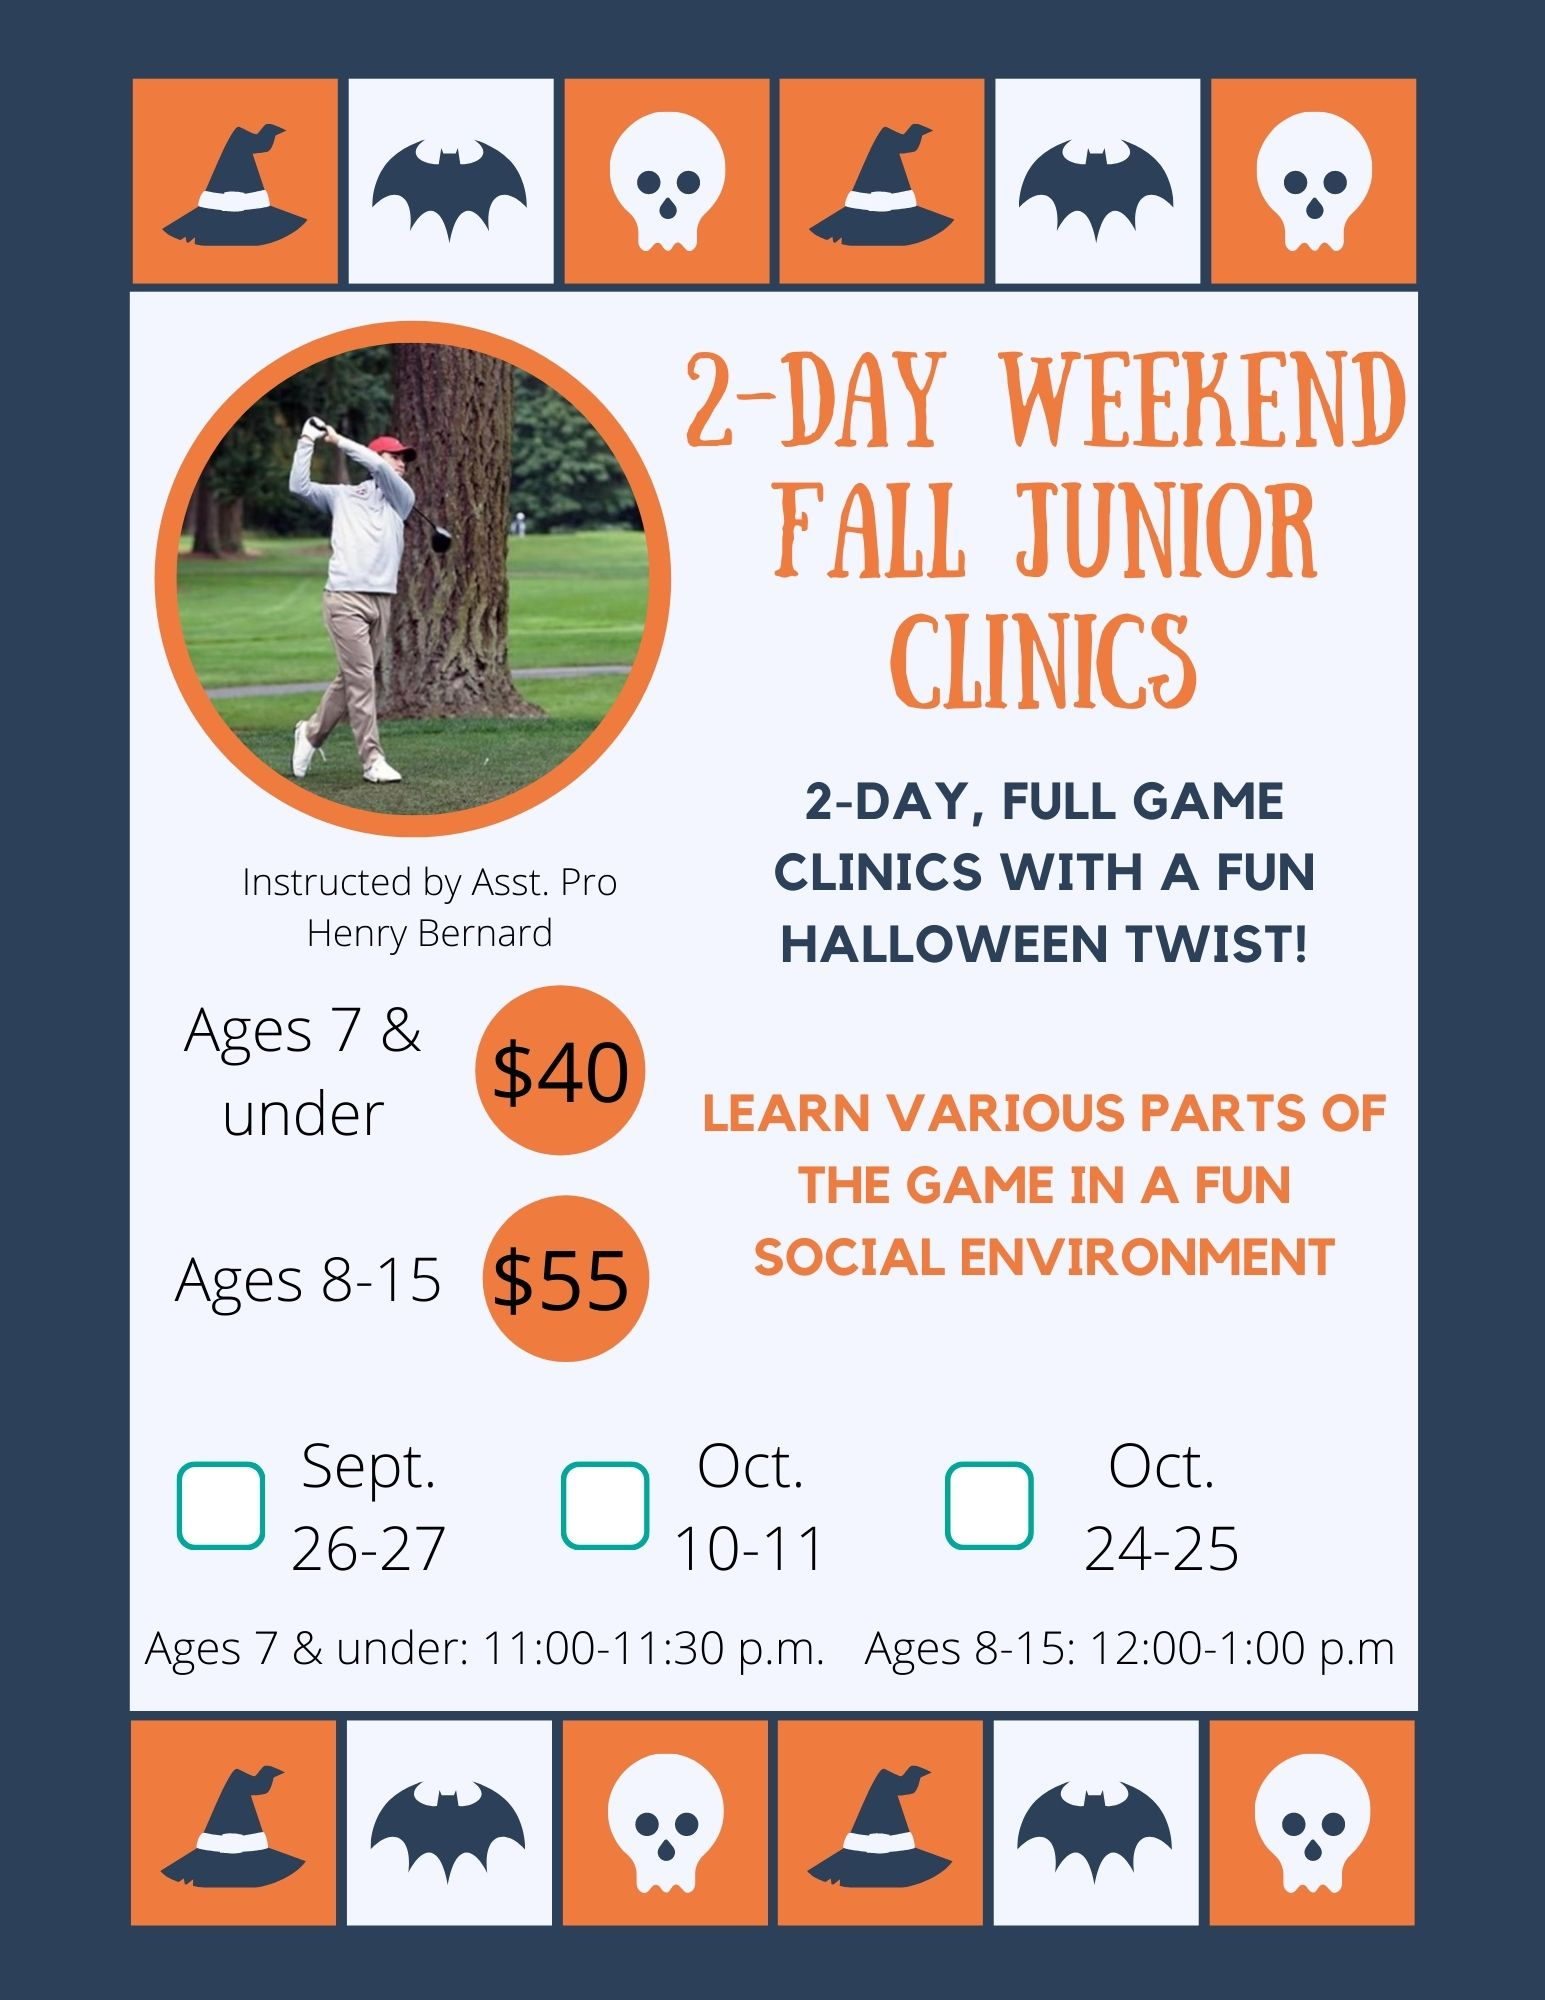 2 day weekend fall junior clinics